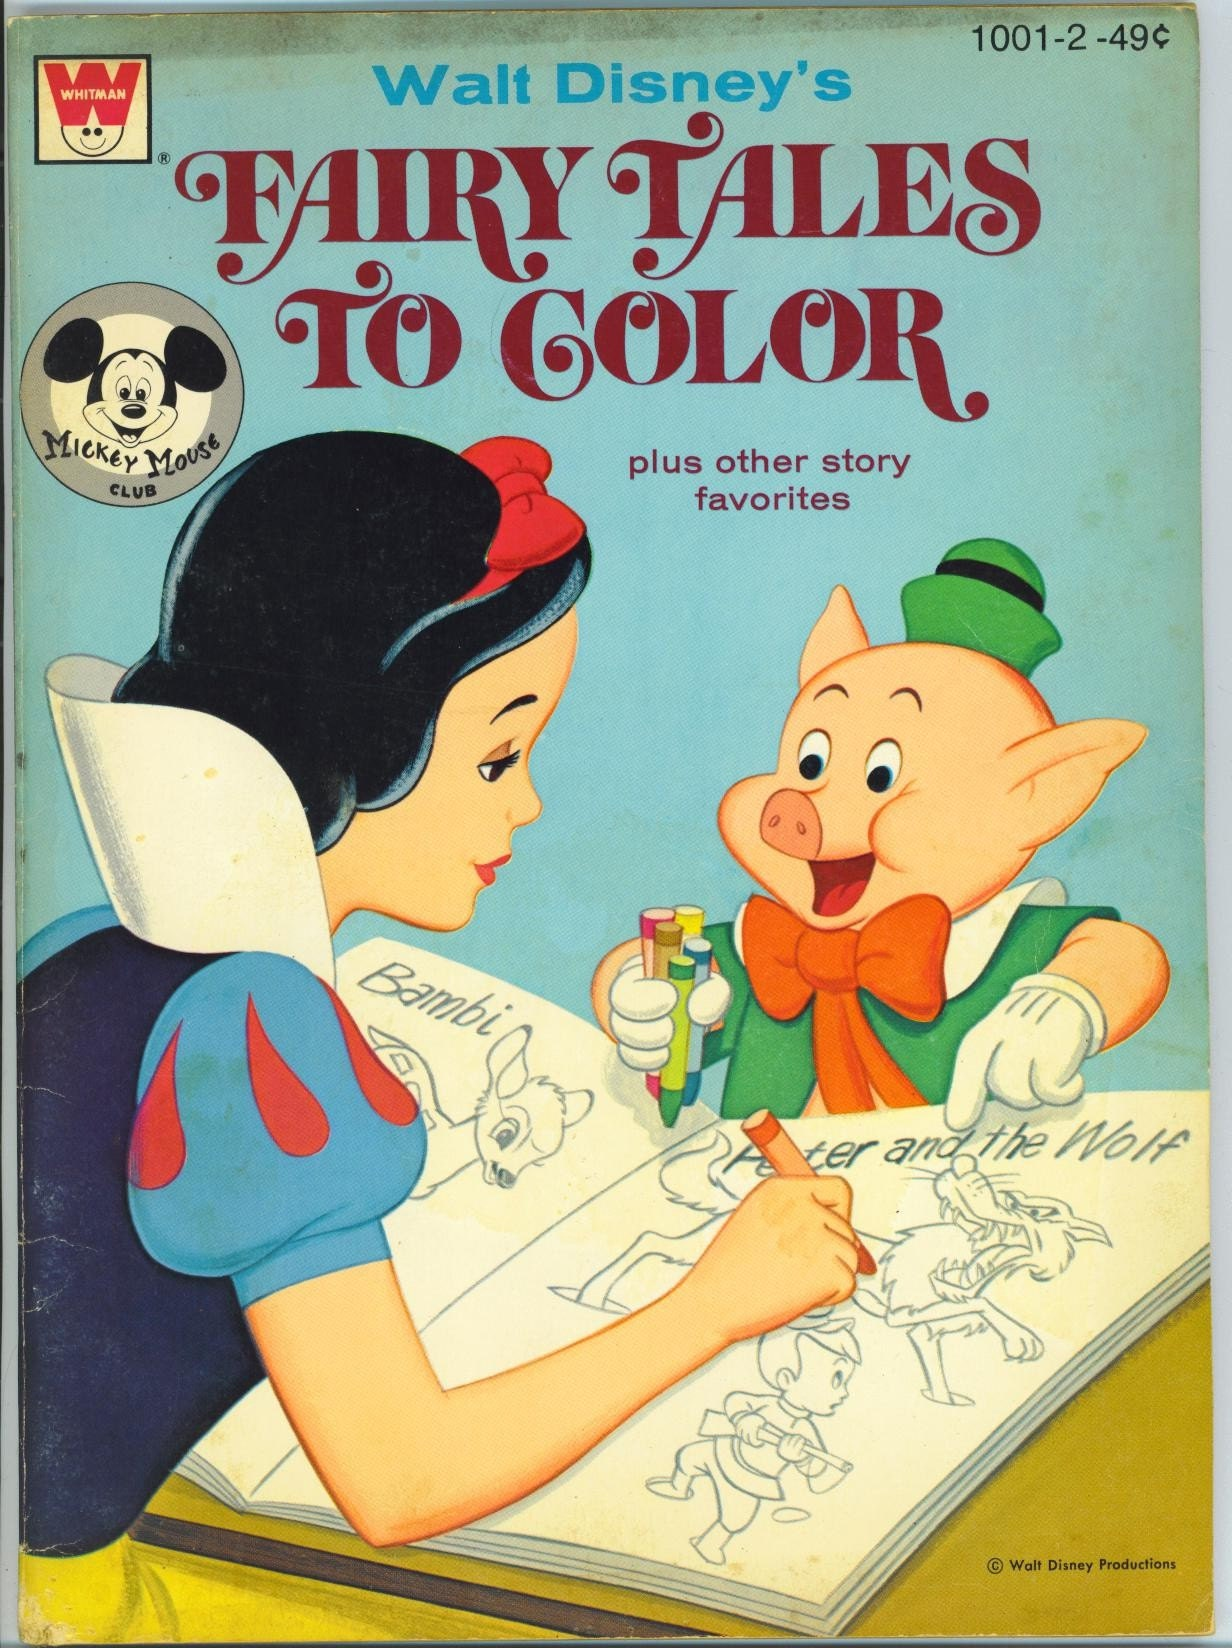 Vintage Disney Coloring Book with